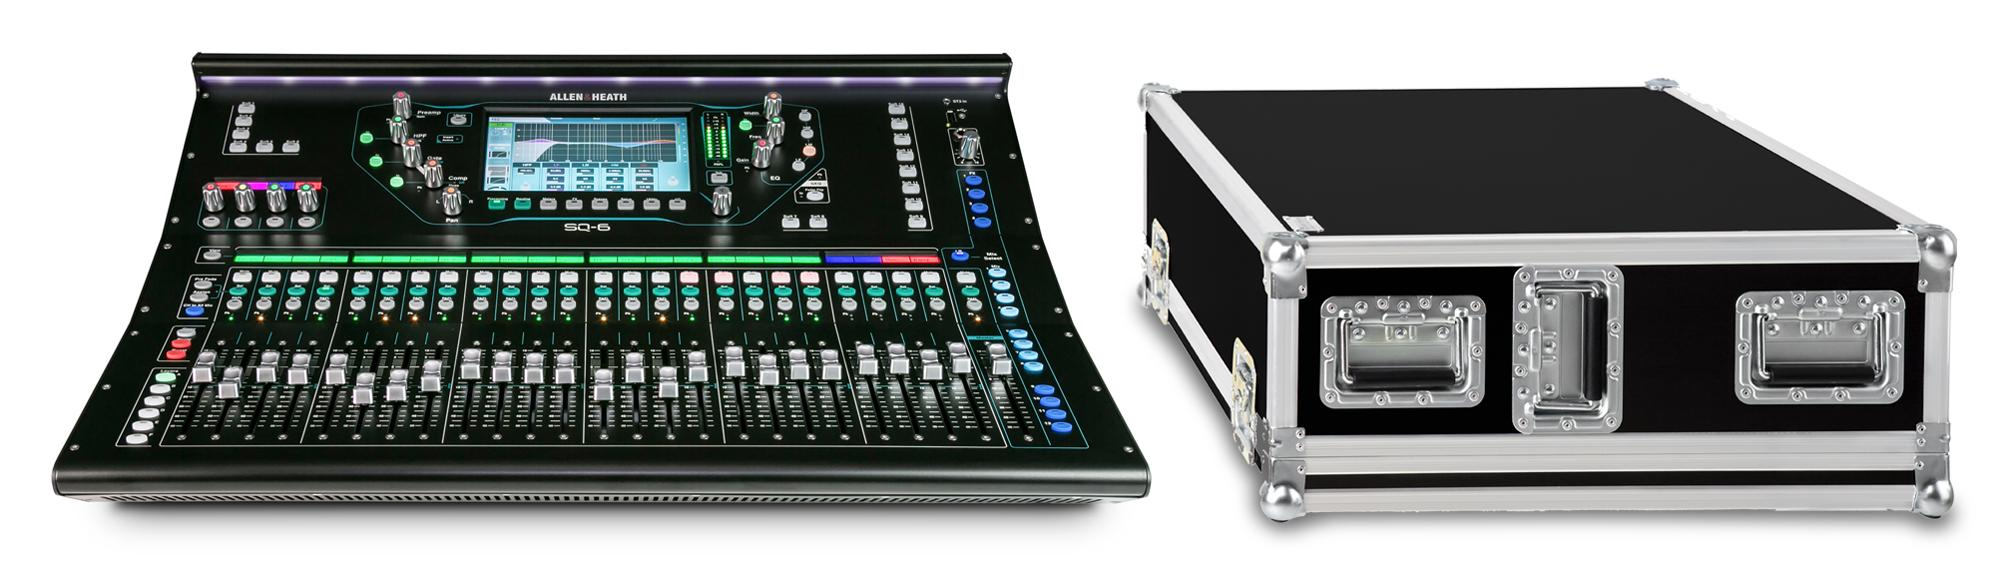 Allen Heath SQ 6 Digital Mischpult Set mit Case